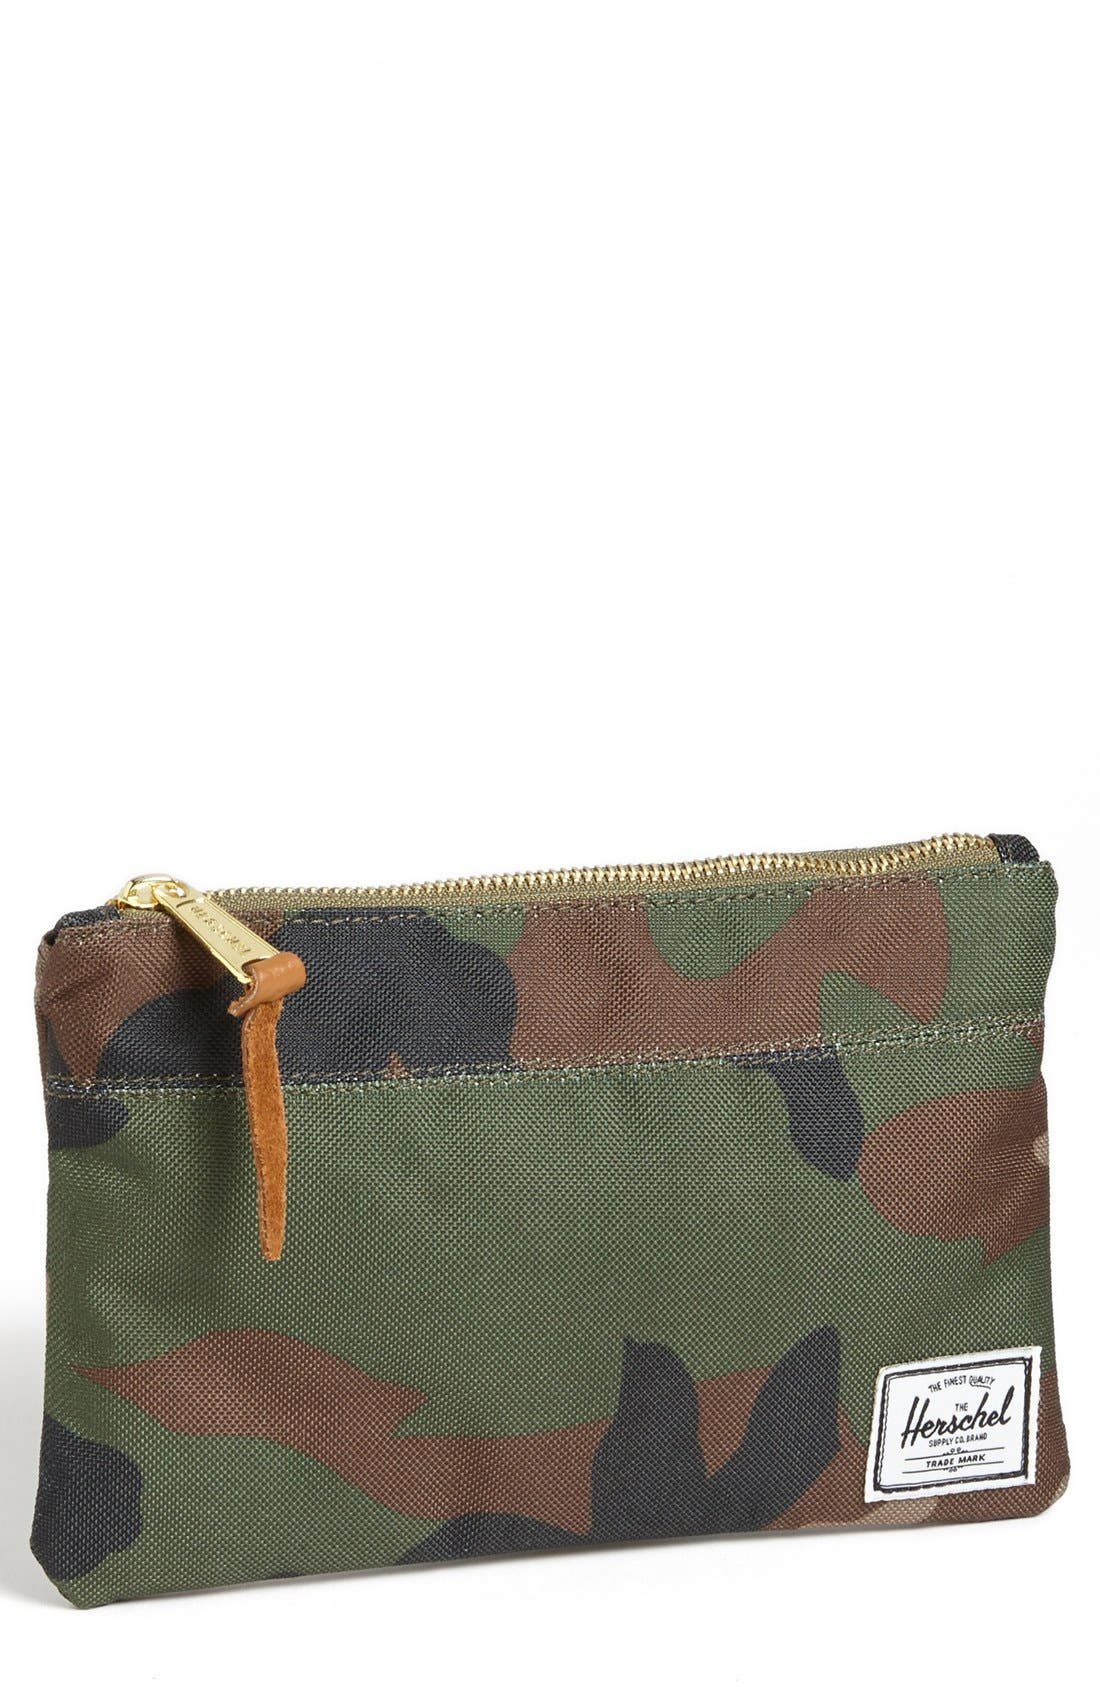 Alternate Image 1 Selected - Herschel Supply Co. Field Pouch